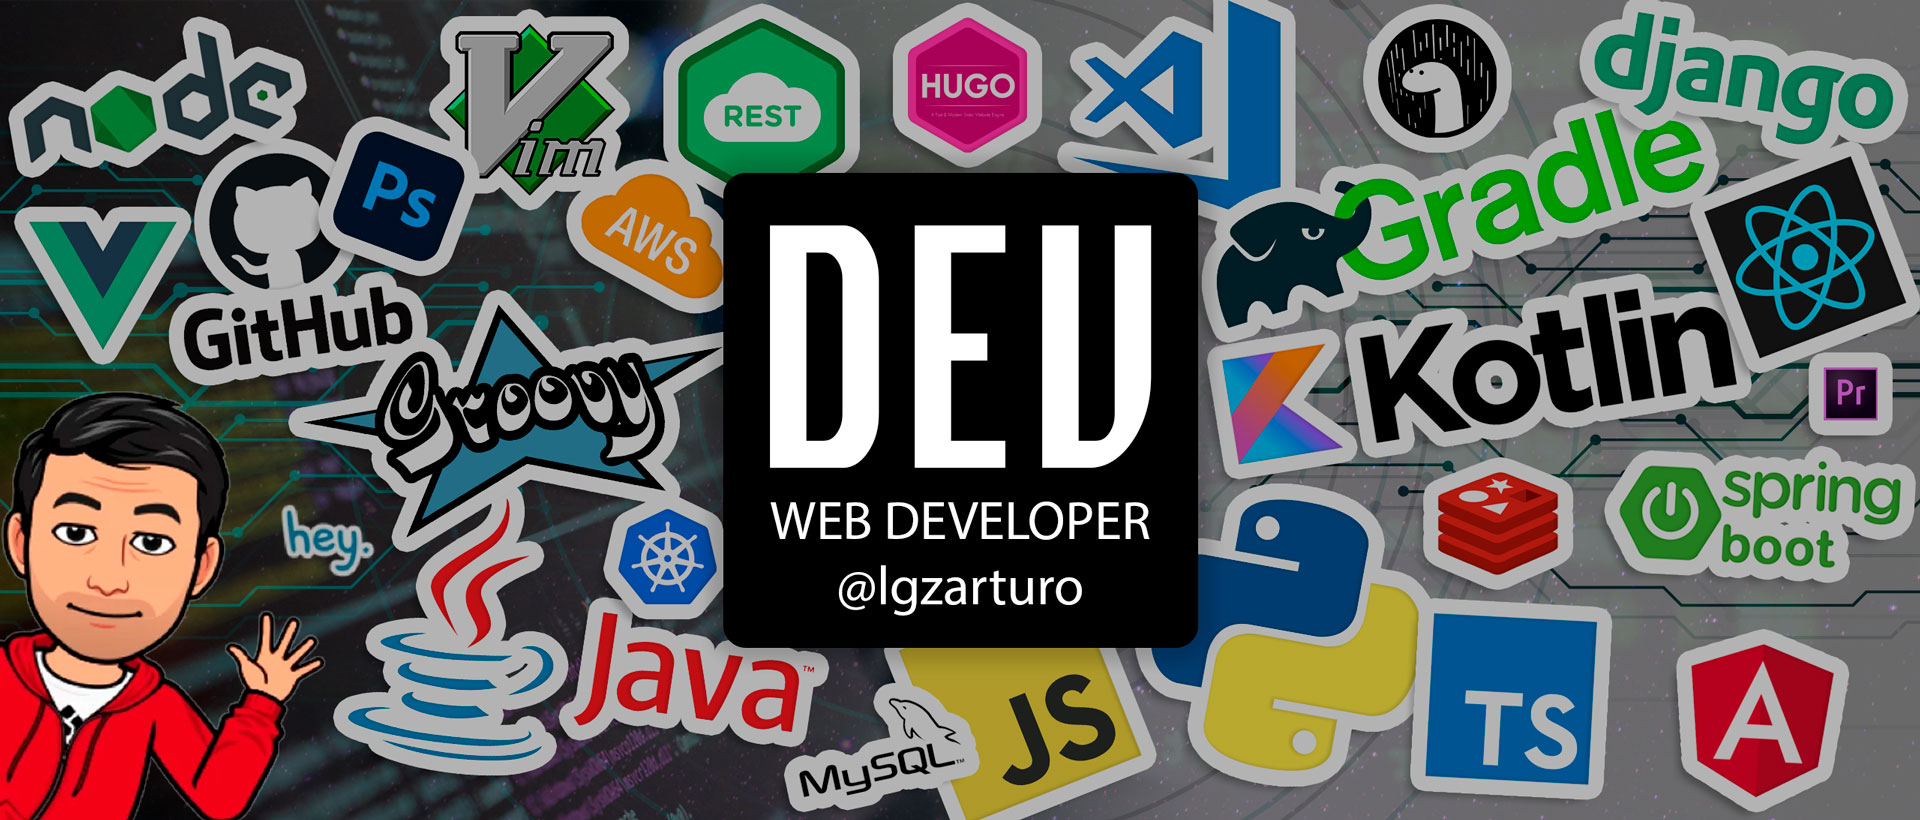 Web Developer @arthurolg